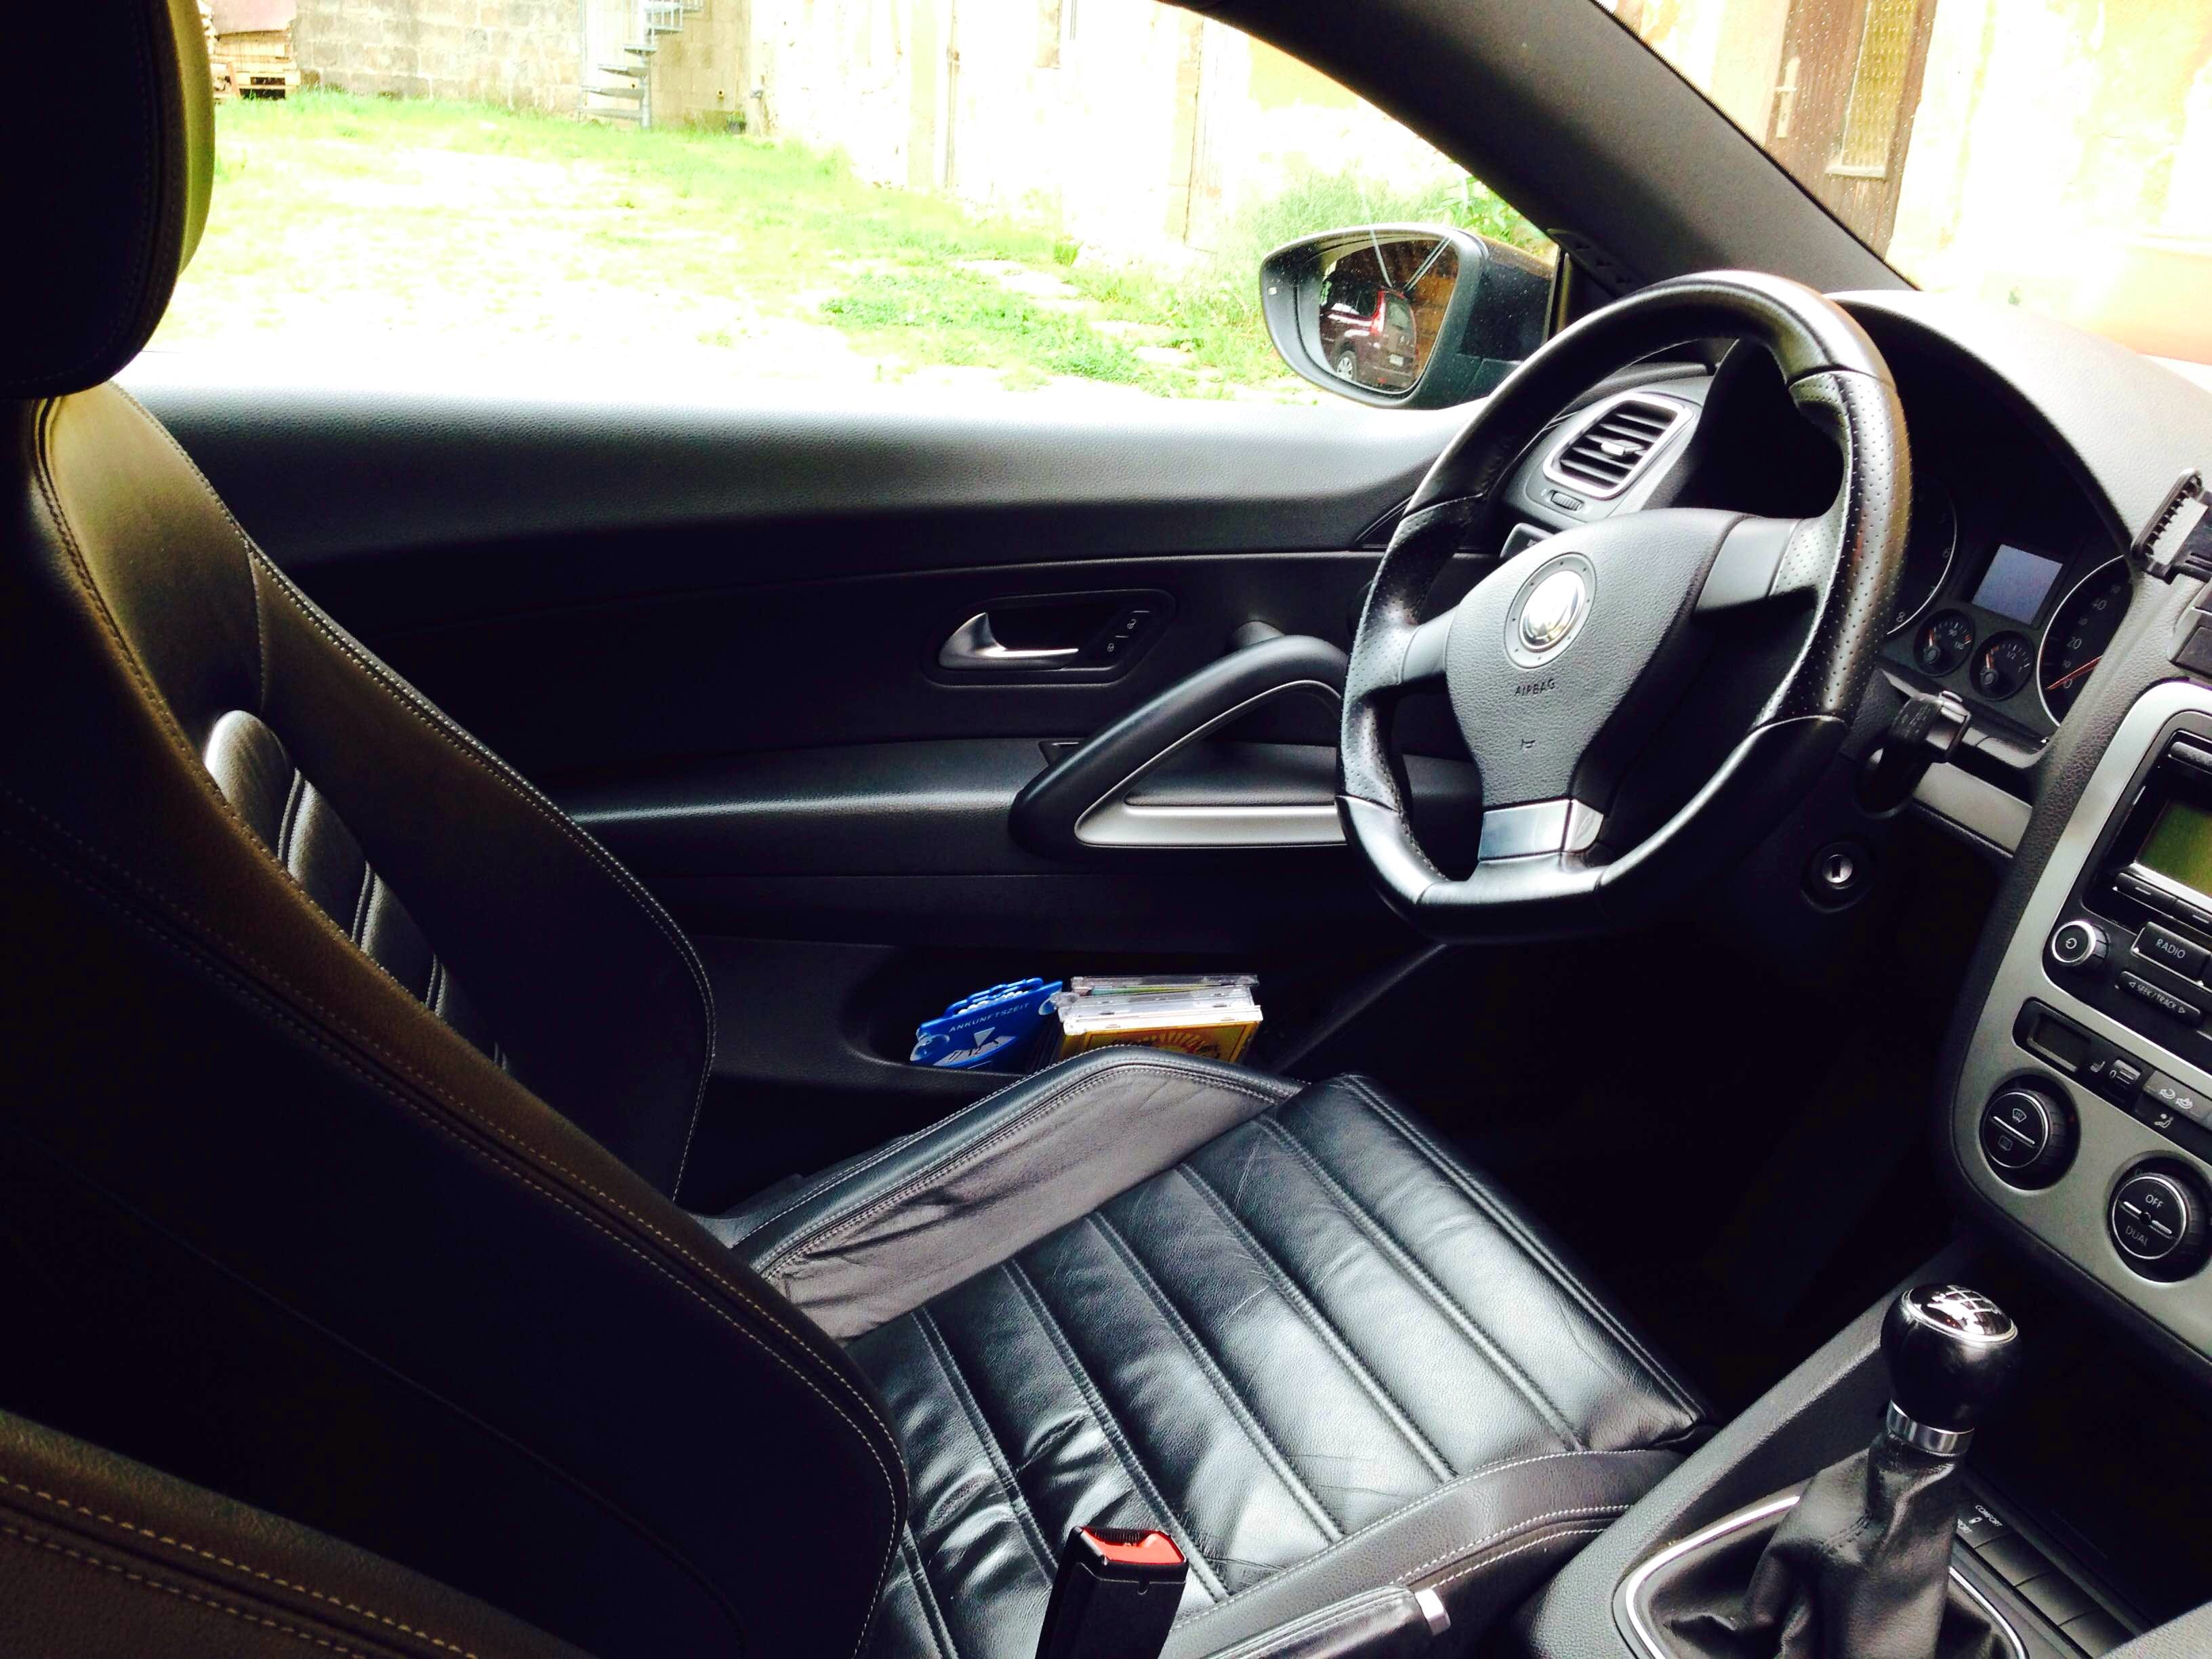 Volkswagen Scirocco 2.0 TSI 200 PS mit CD-Player